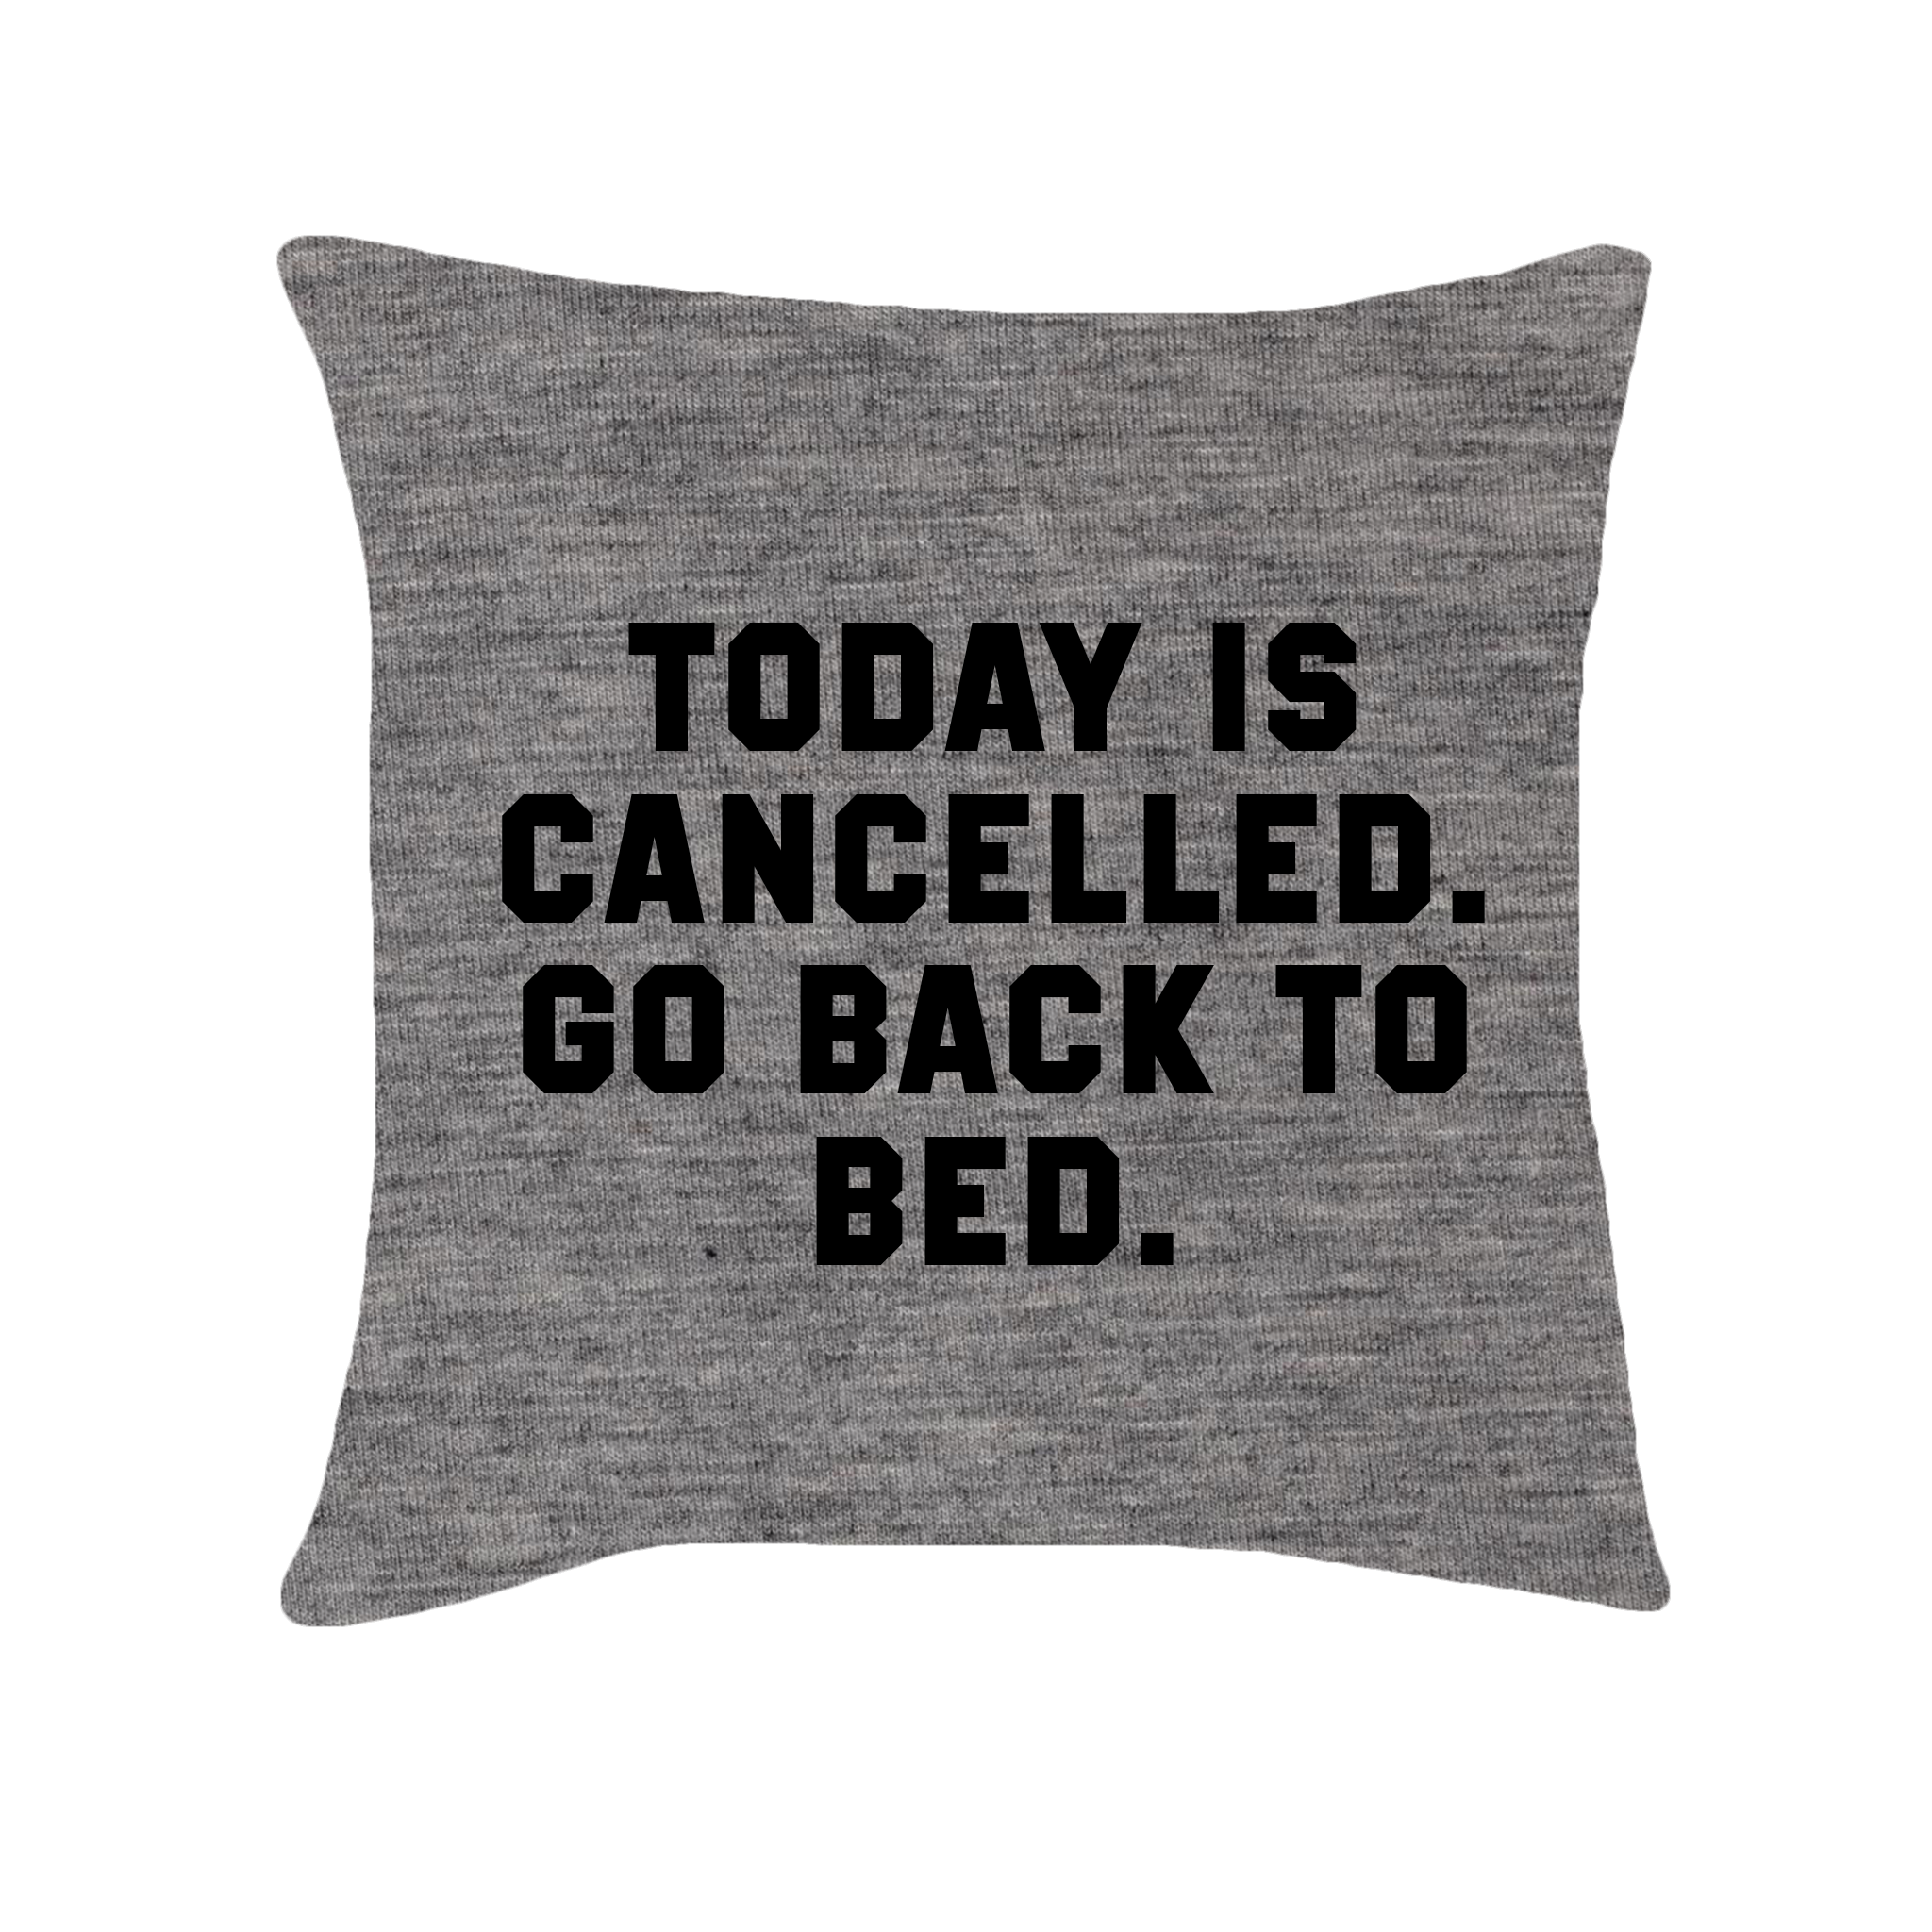 Couch pillow png. Today is cancelled go